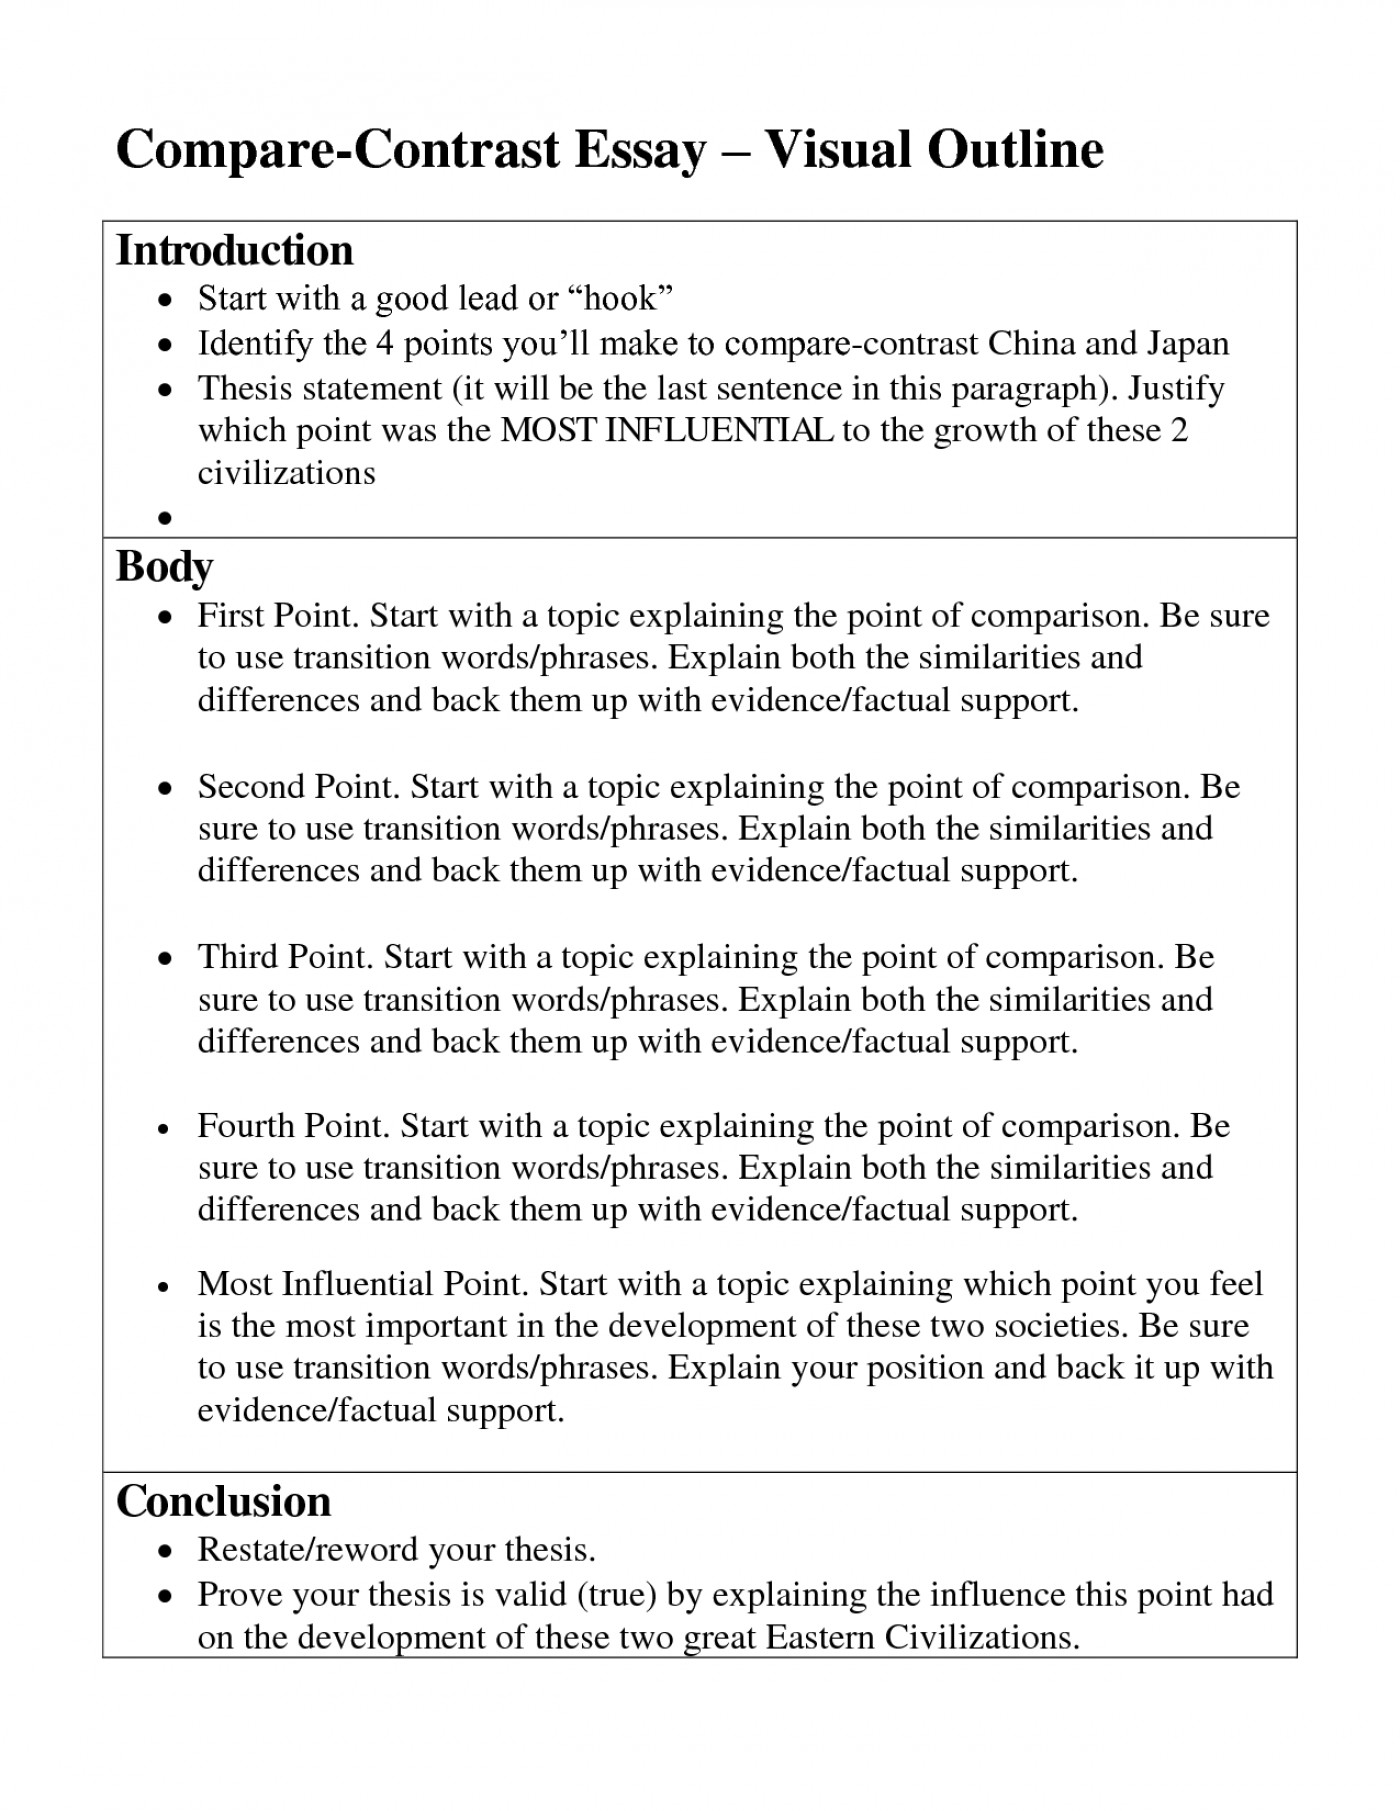 004 Comparison And Contrast Essay Outline Impressive Compare Format Middle School Worksheet Pdf Examples 1400